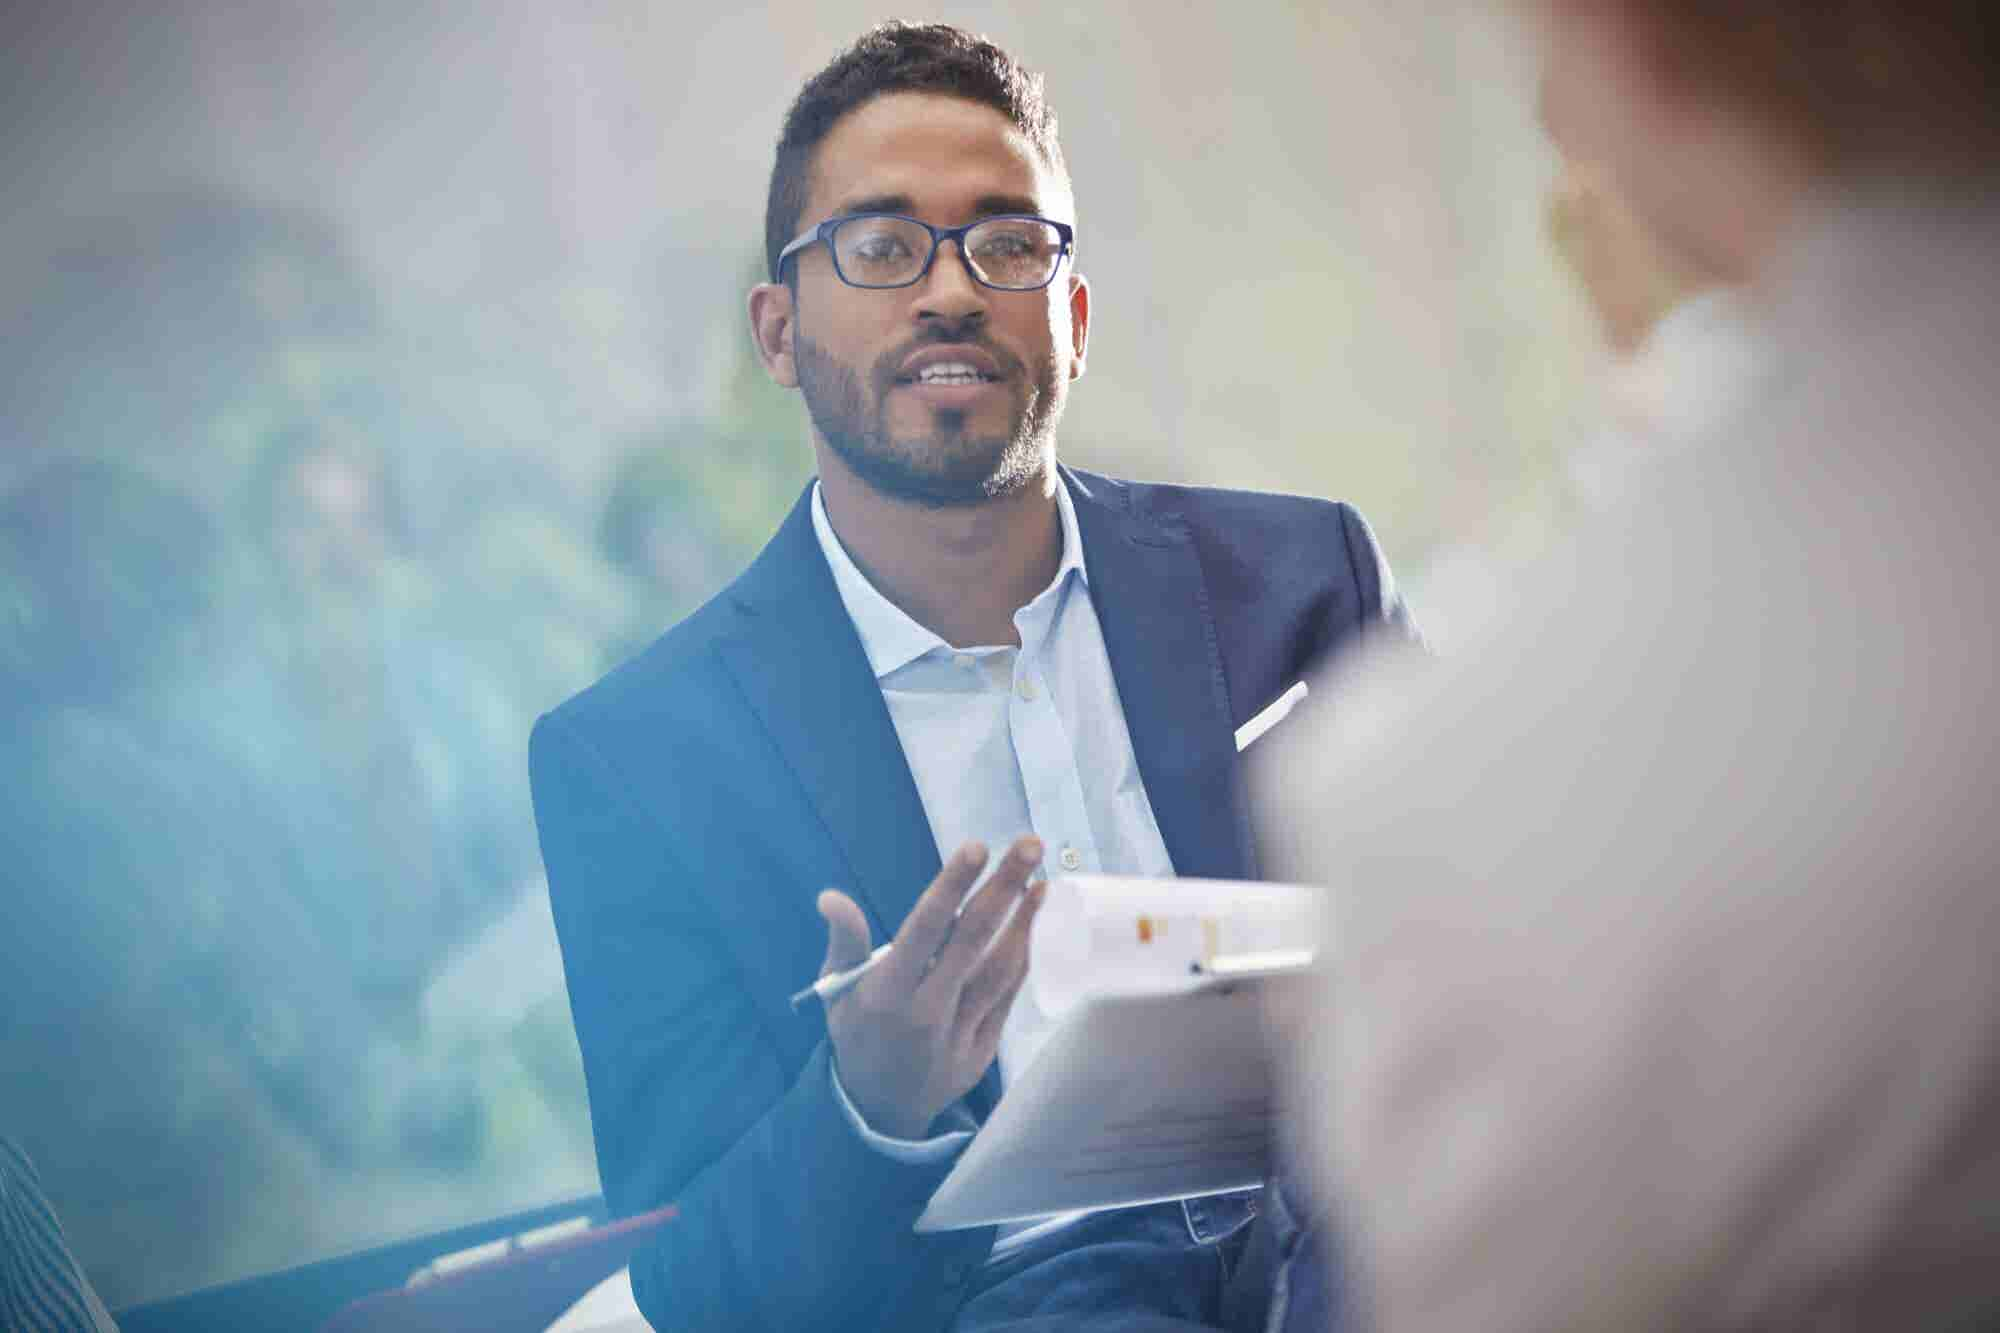 Simple Techniques for Boosting Morale That Many Leaders Miss. Are You One of Them?